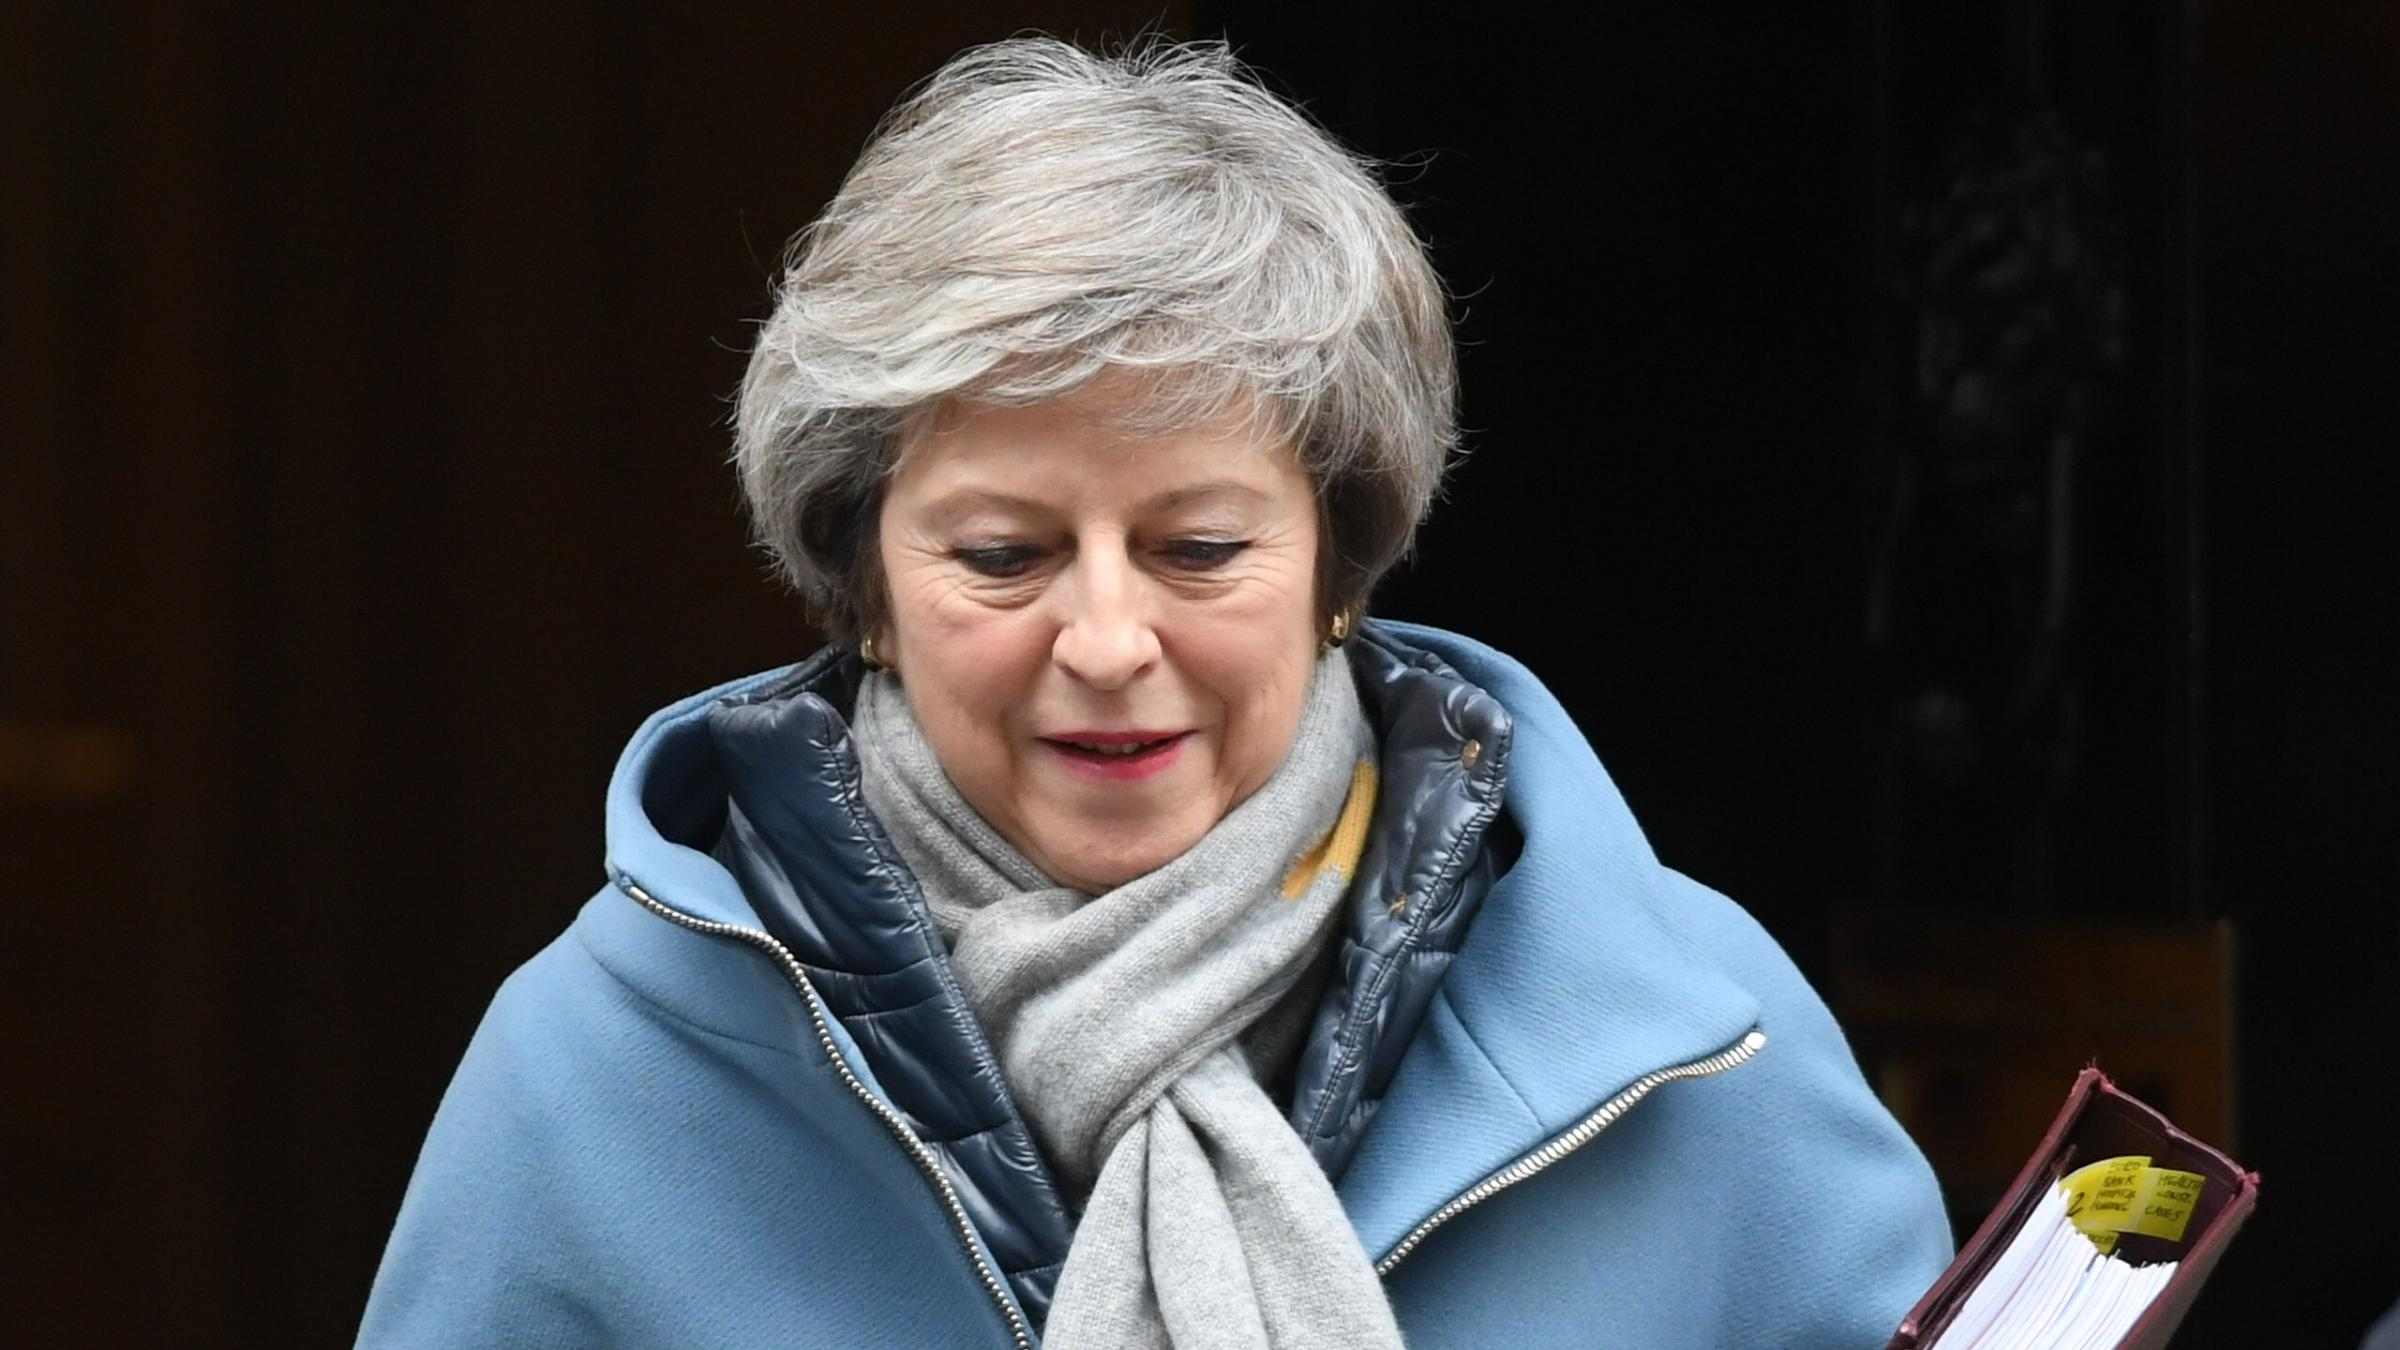 Embattled: May will spend weekend talking to union and business leaders but numbers for her Brexit Plan look bad